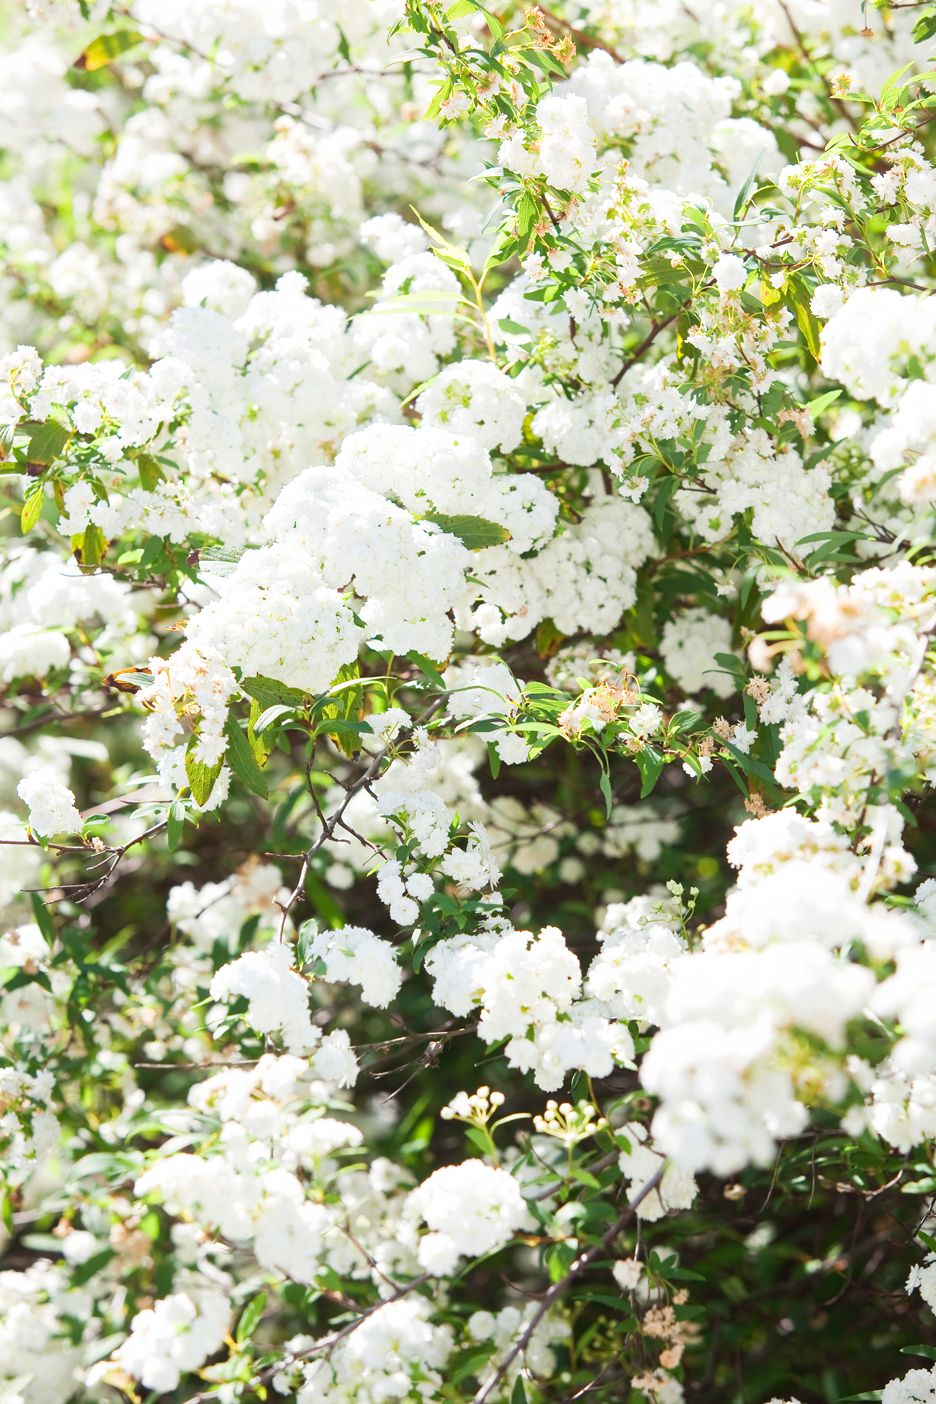 Mays Garden: May Bush Is One Of The Most Spectacular White